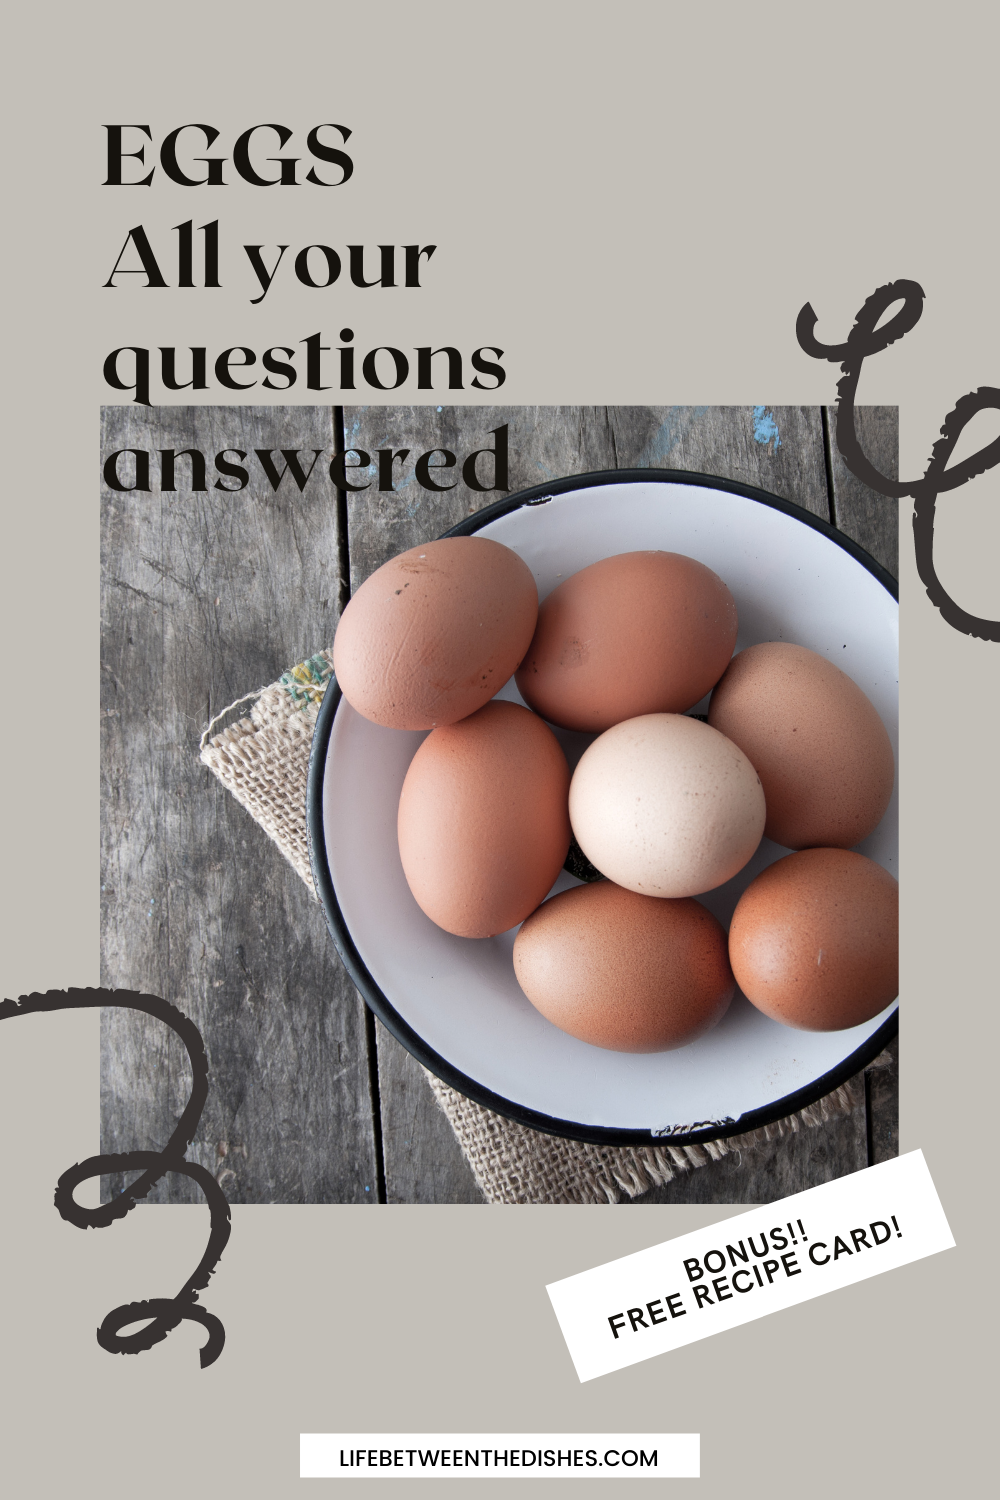 Image of whole eggs with blog post title